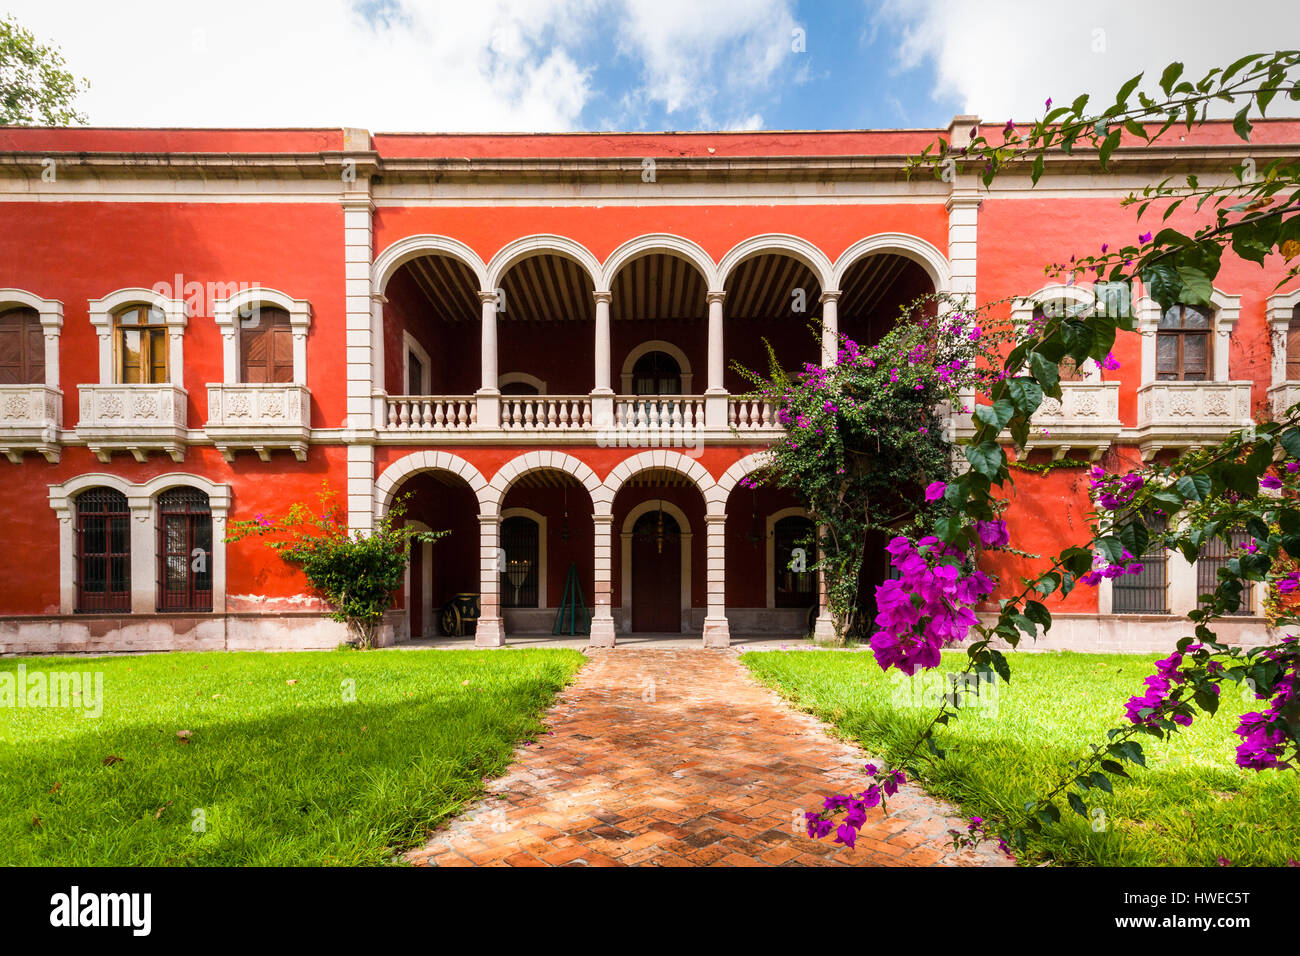 A facade of the grand ex hacienda El Gogorron in San Luis Potosi, Mexico. - Stock Image